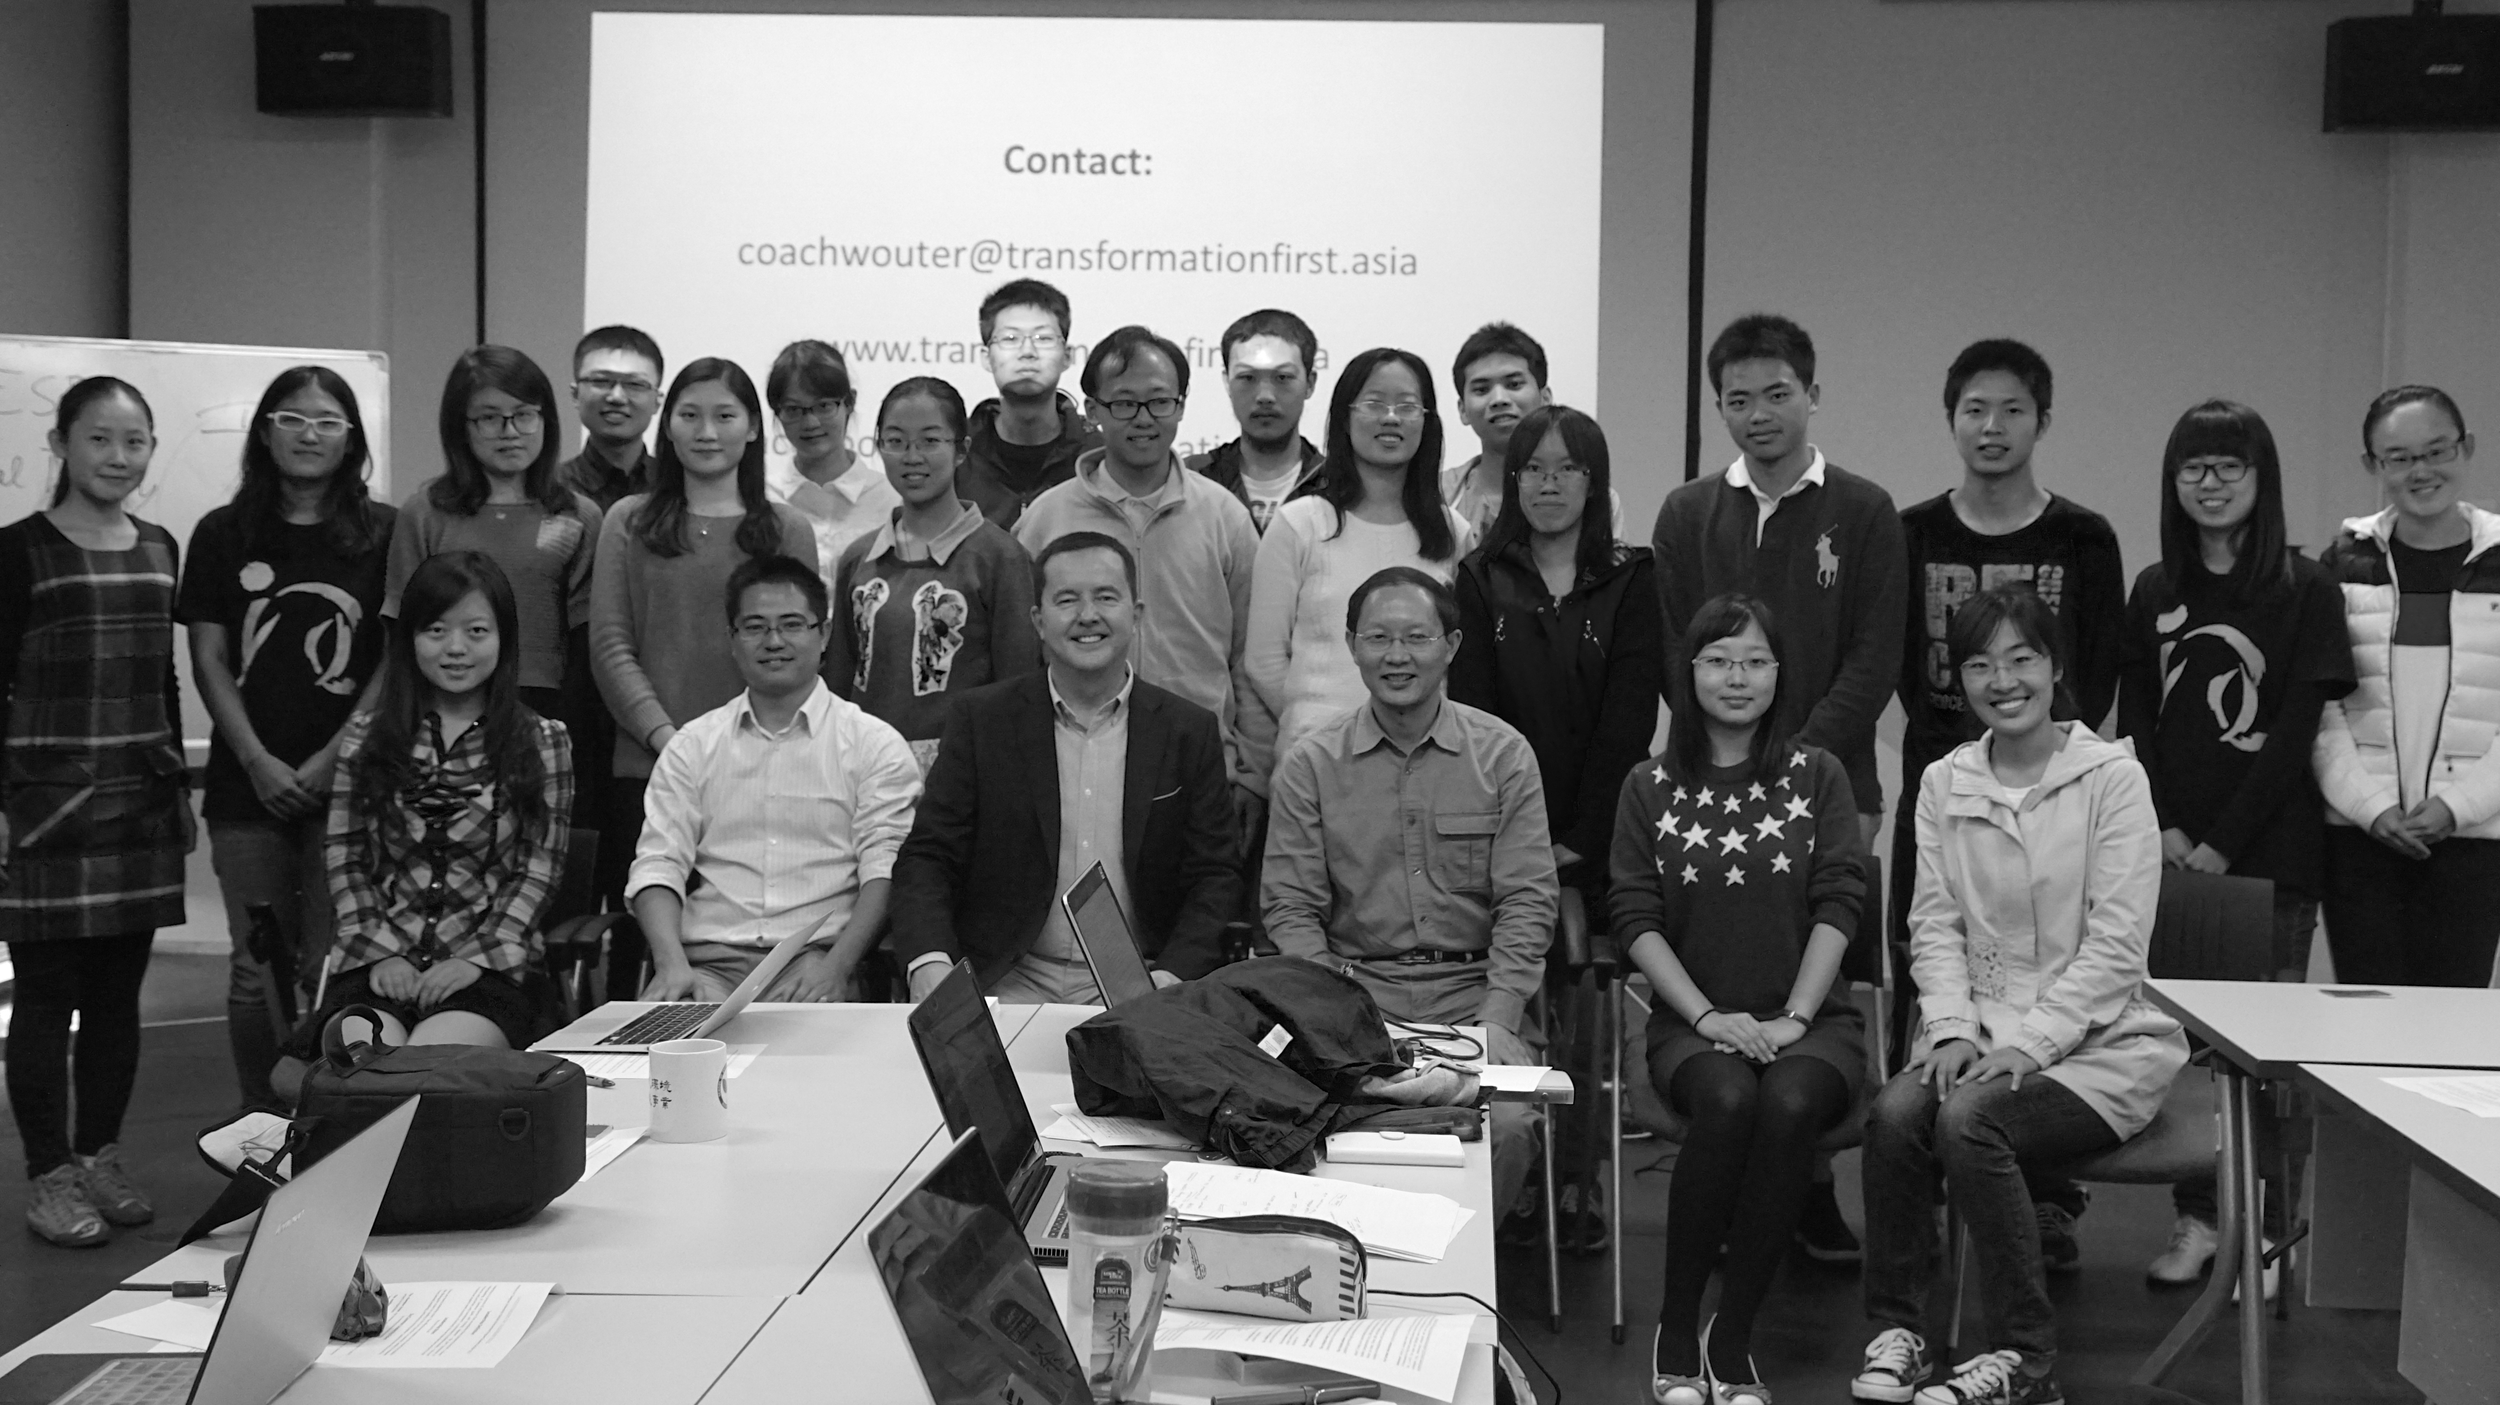 Dr Sun Fu and students of Tsinghua University's Global Environment Program discuss leadership with Coach Wouter